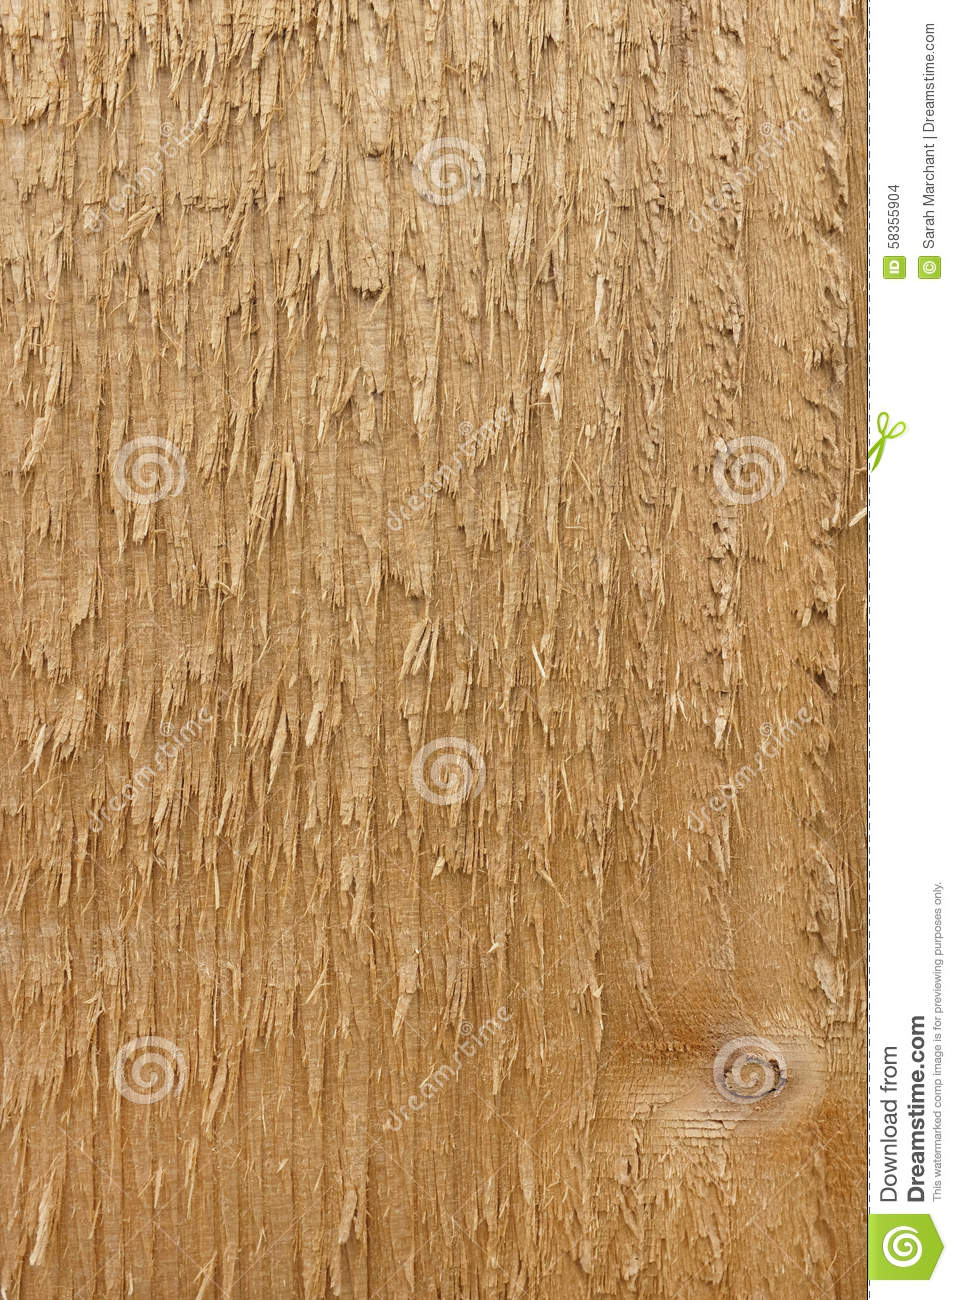 Wooden Post Texture rough pine wood background stock photo - image: 58355904